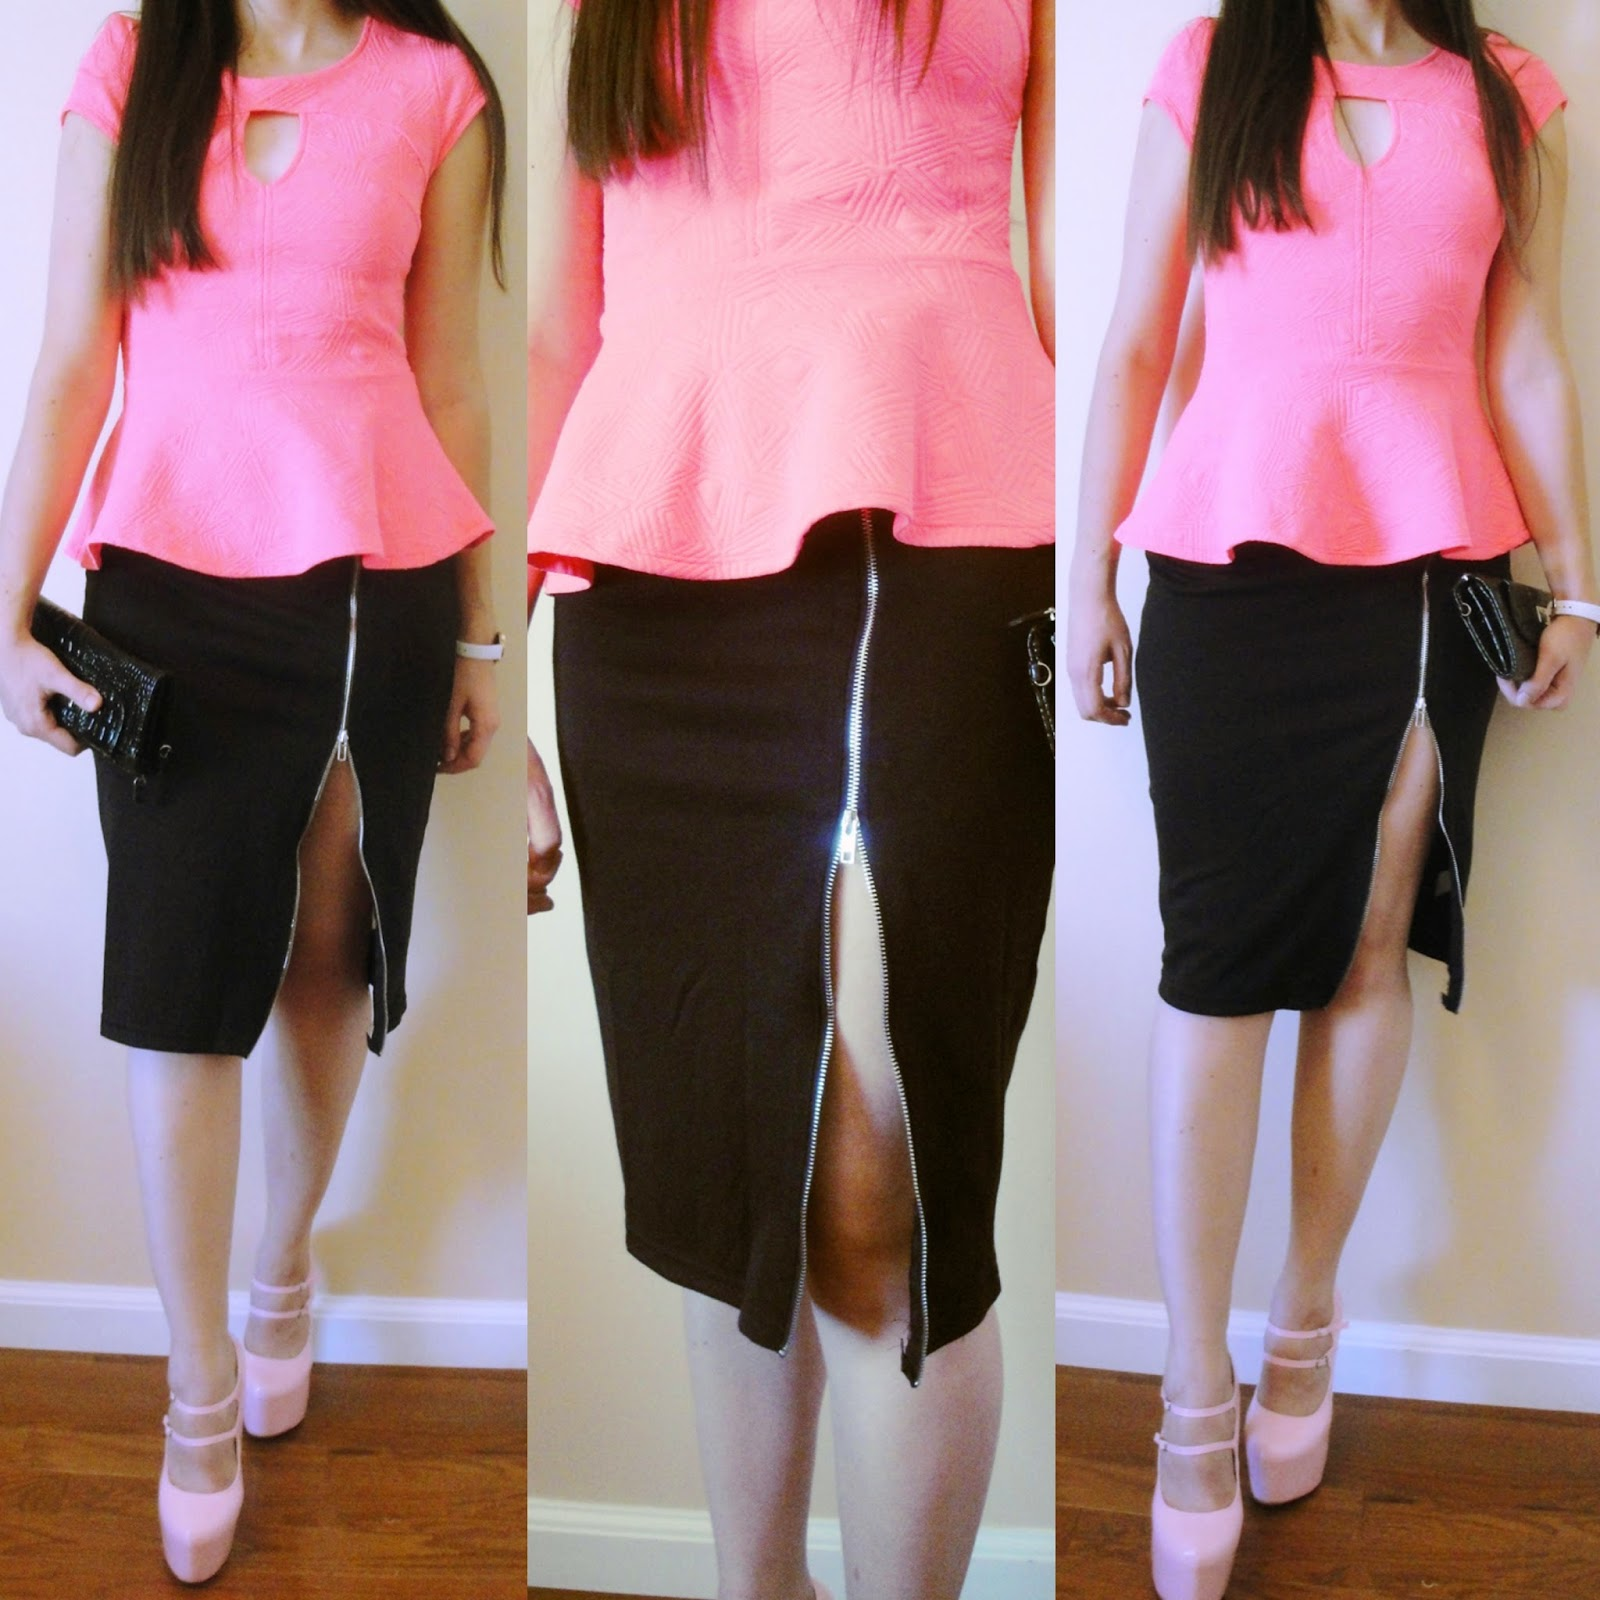 front side zipper skirt, zipper skirt, black five outfit, blackfive fashion, pink peplum top outfit, peplum top, fashion,